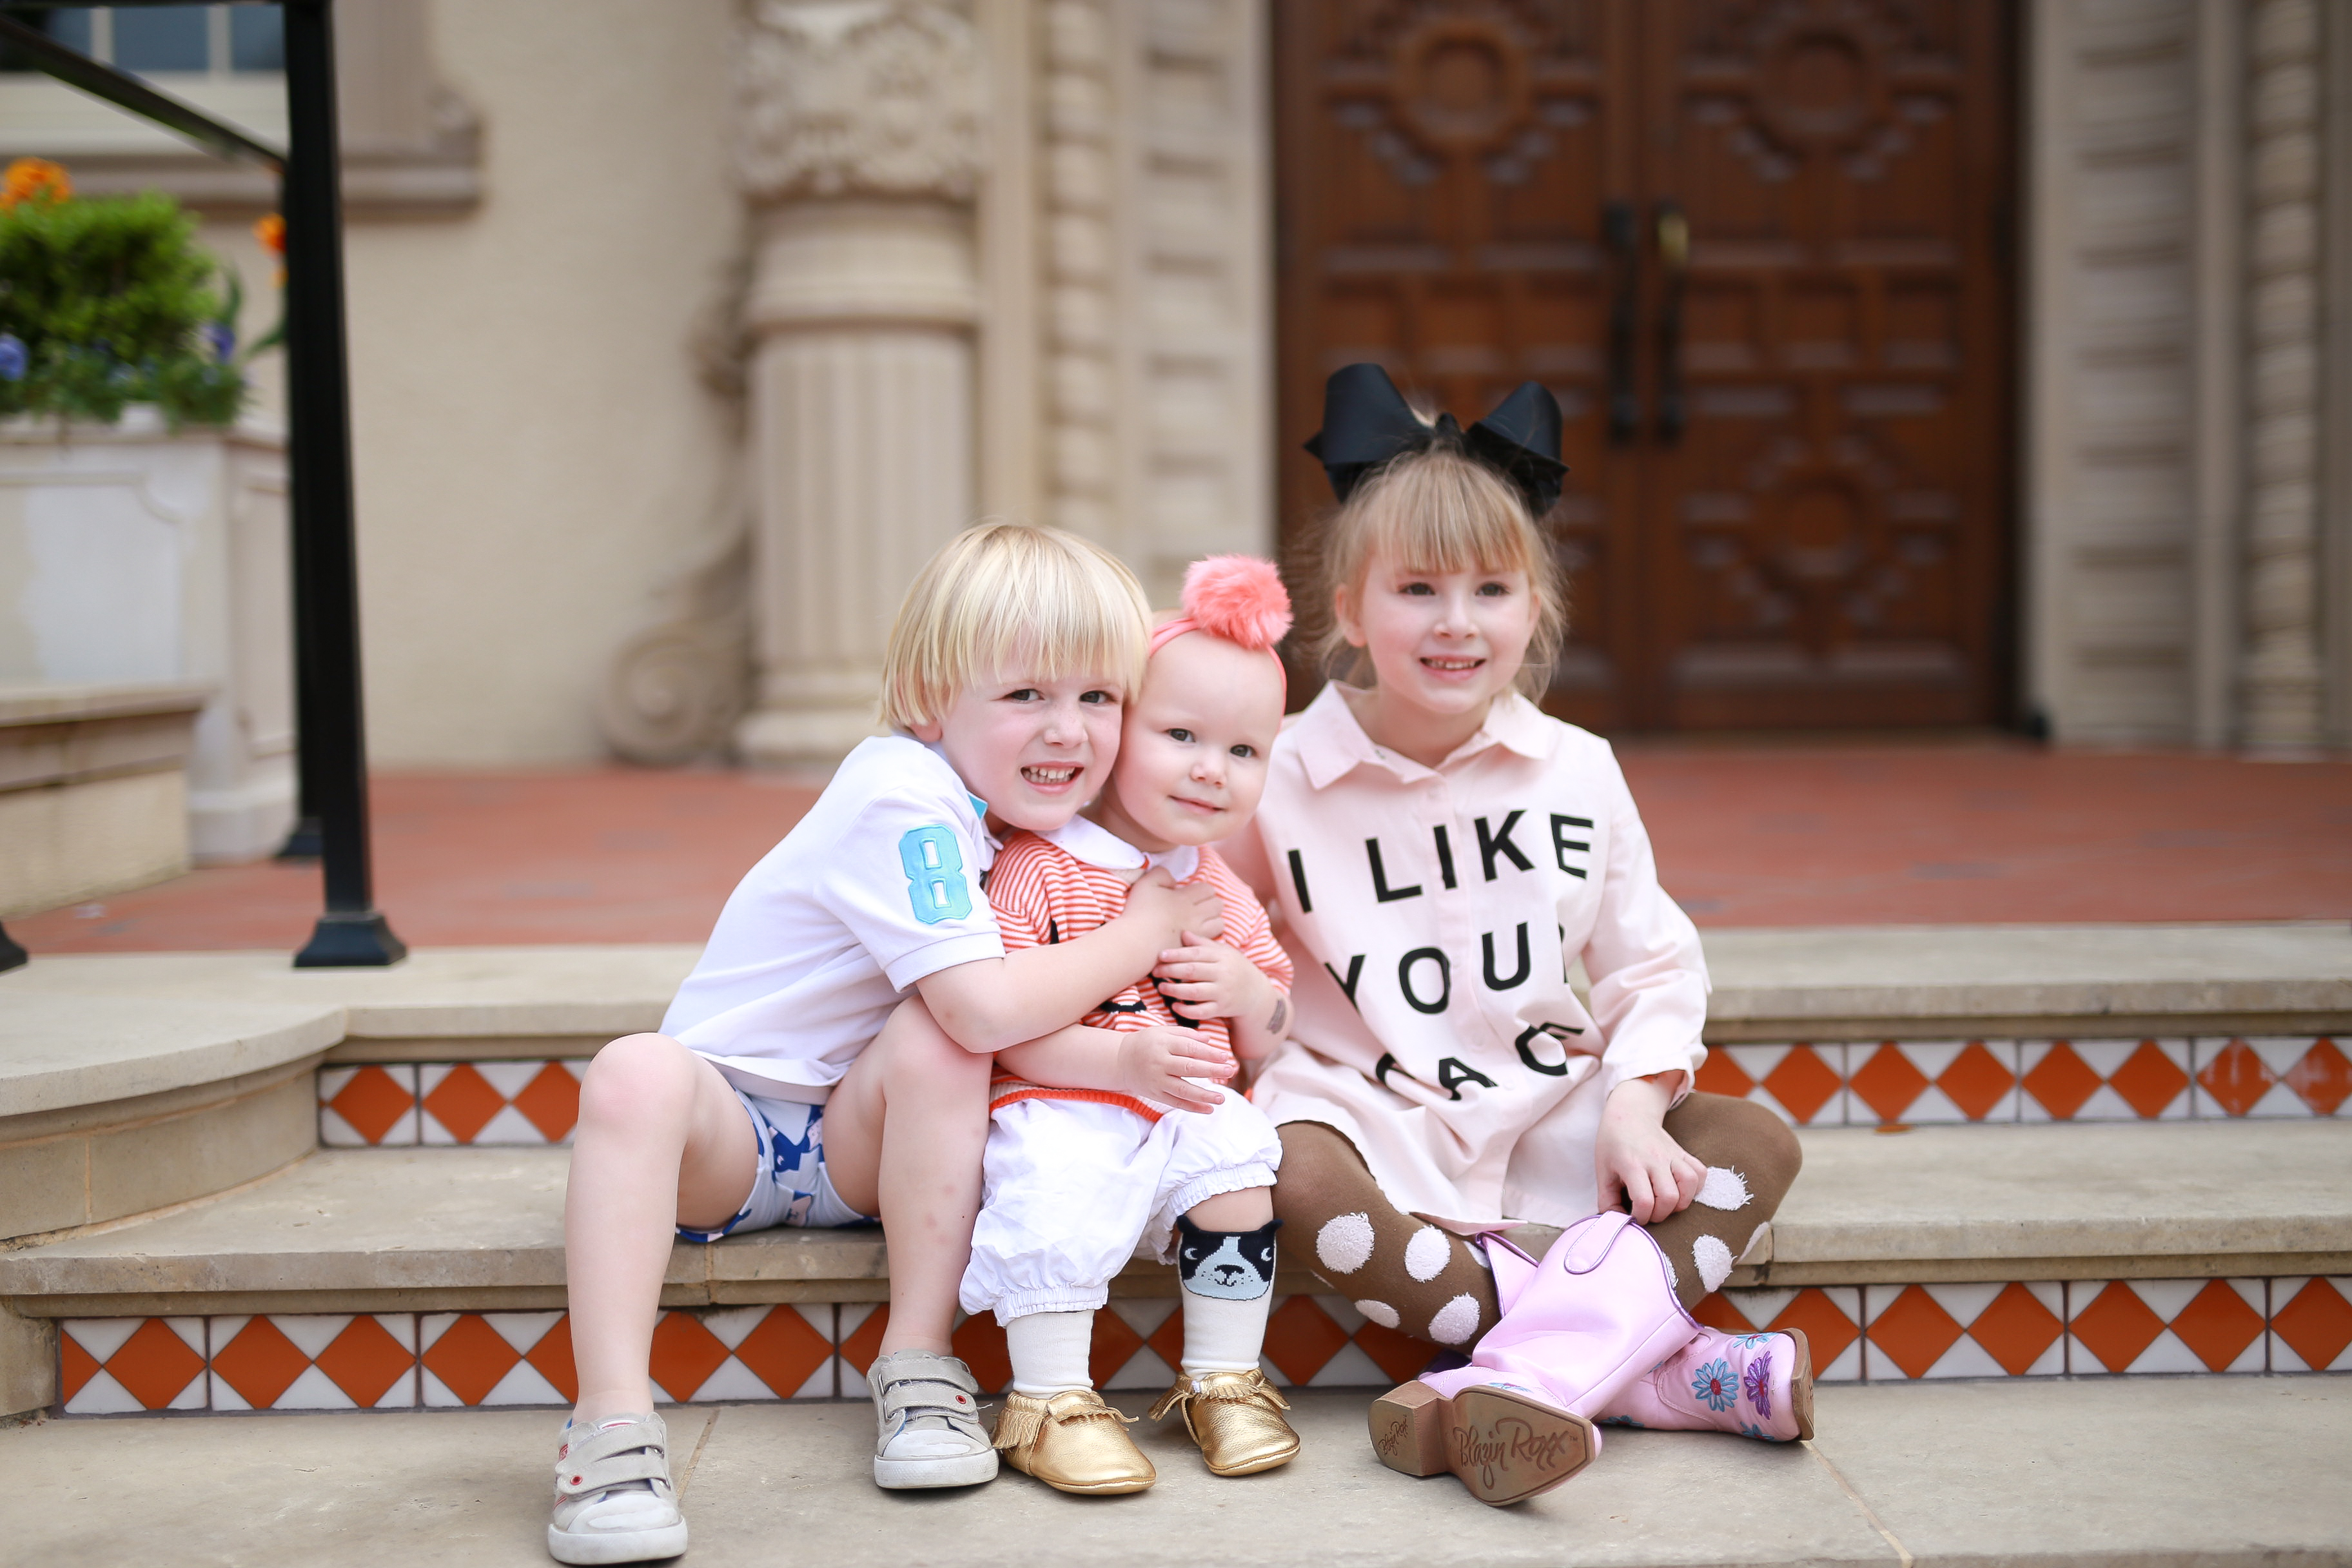 Alexander, Annabelle, and Angelina wearing Ollie and Mae